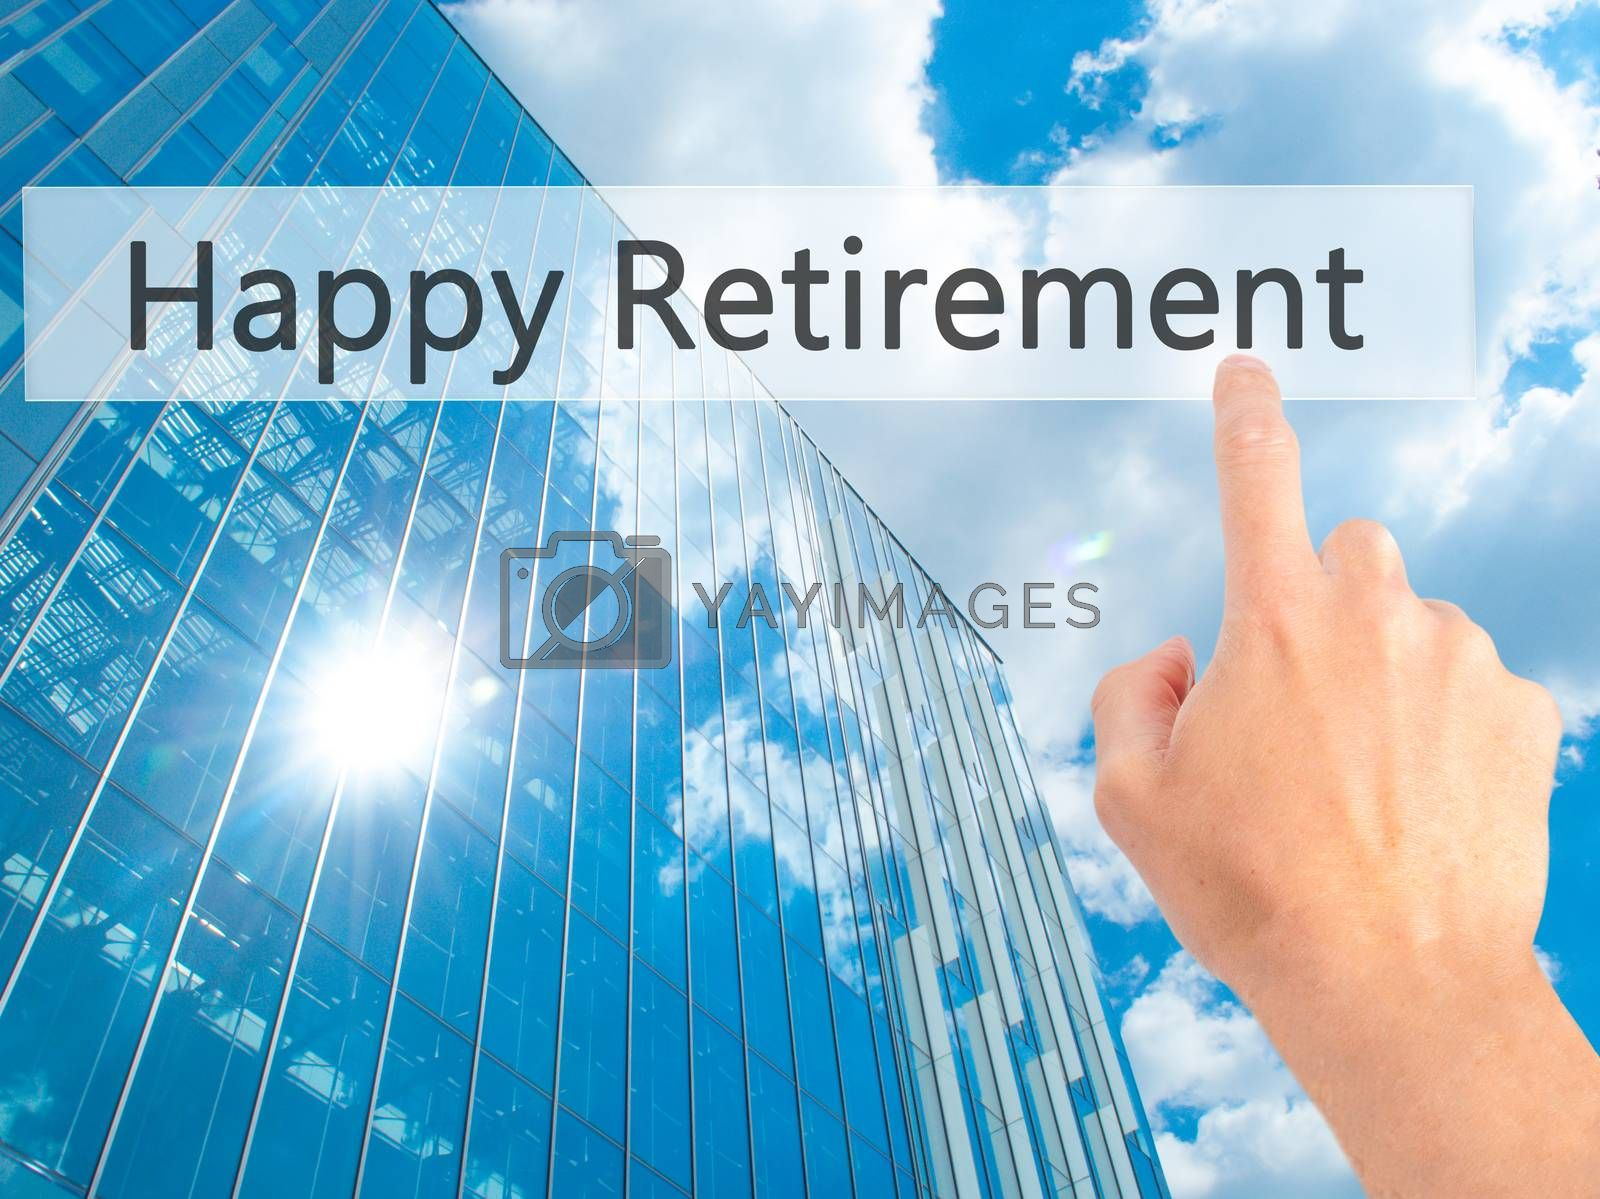 Happy Retirement - Hand pressing a button on blurred background  by netsay.net